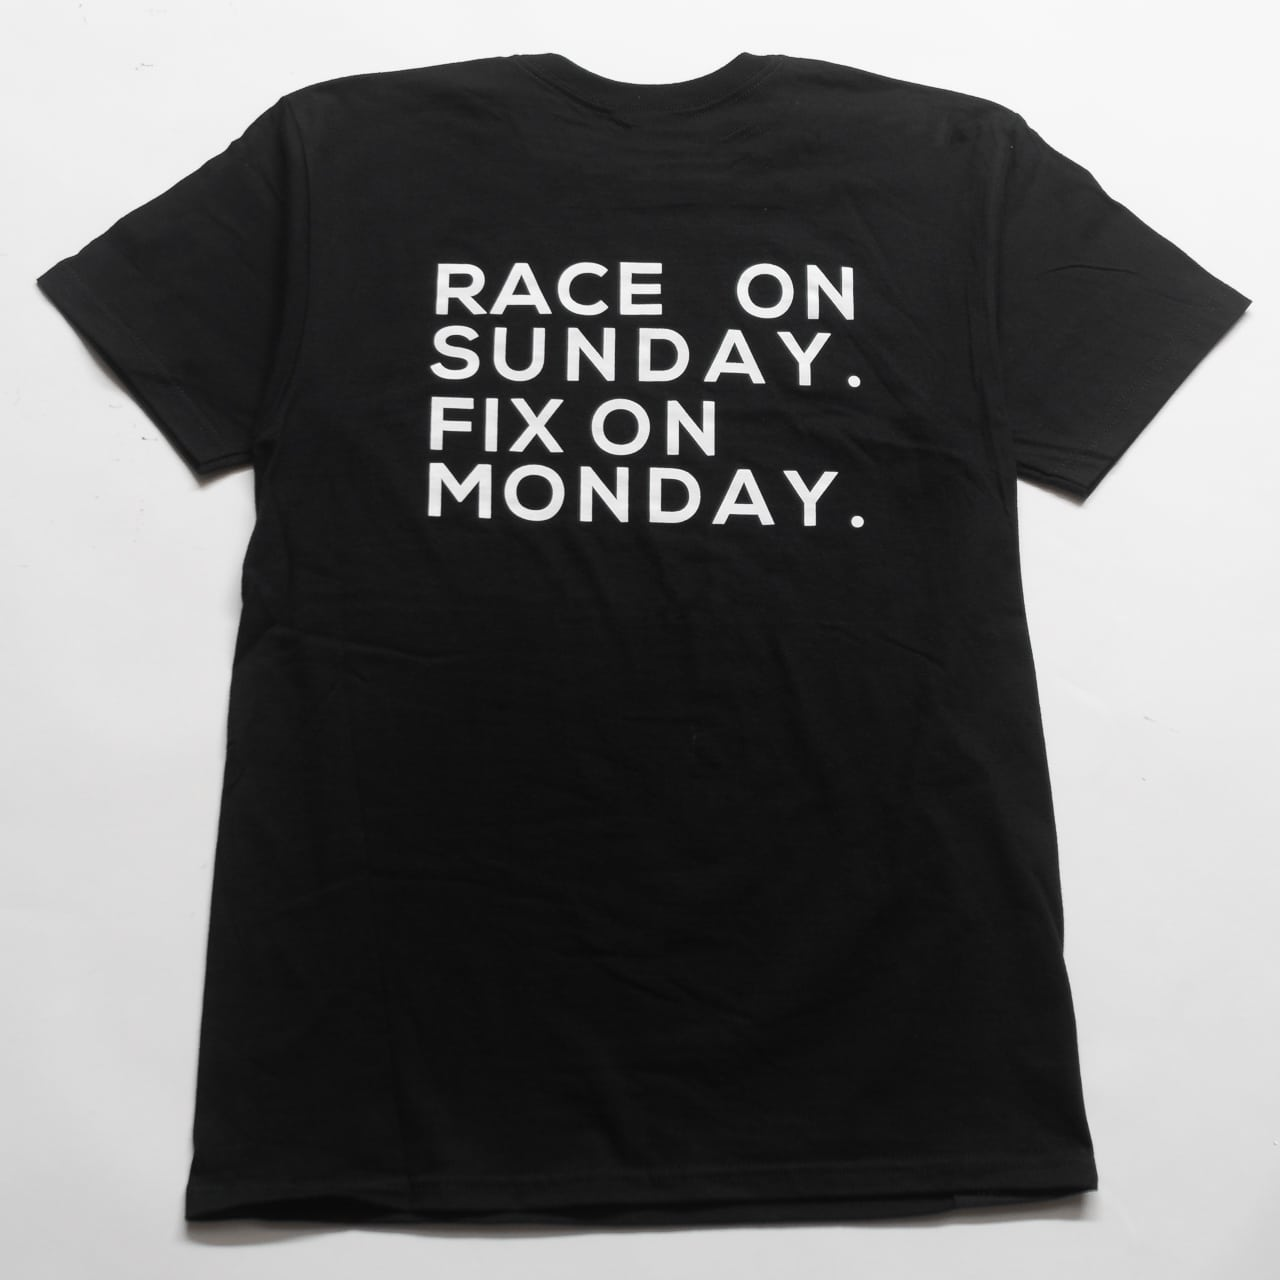 Race on Sunday Tee Shirt - Buildjournal